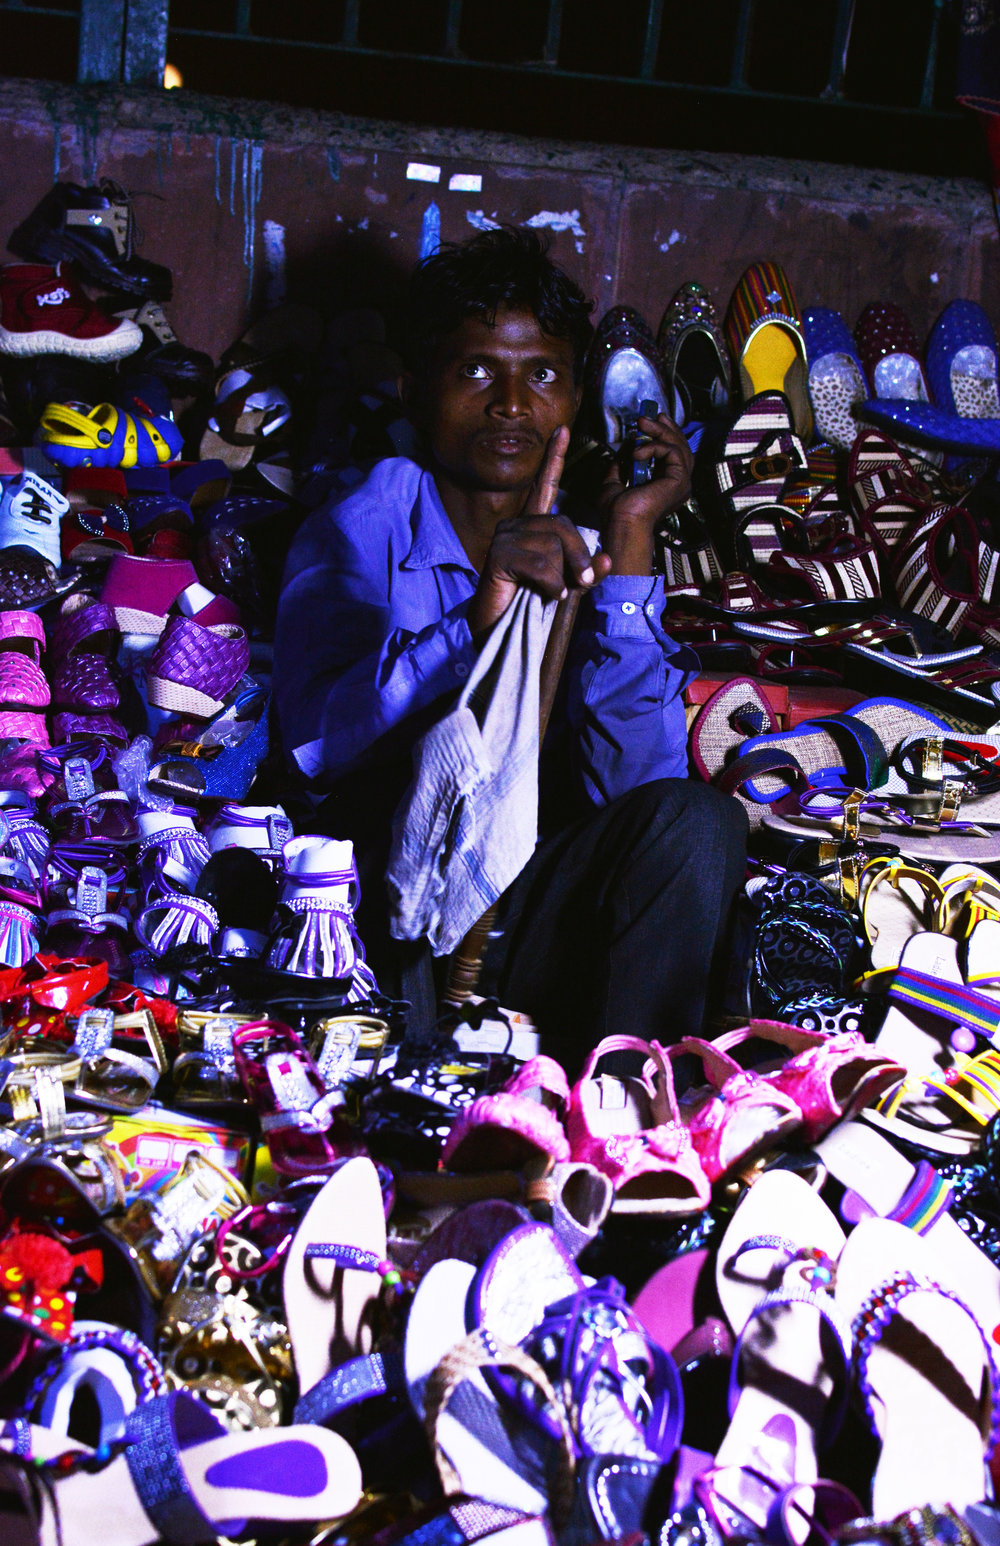 shoes vendor.jpg